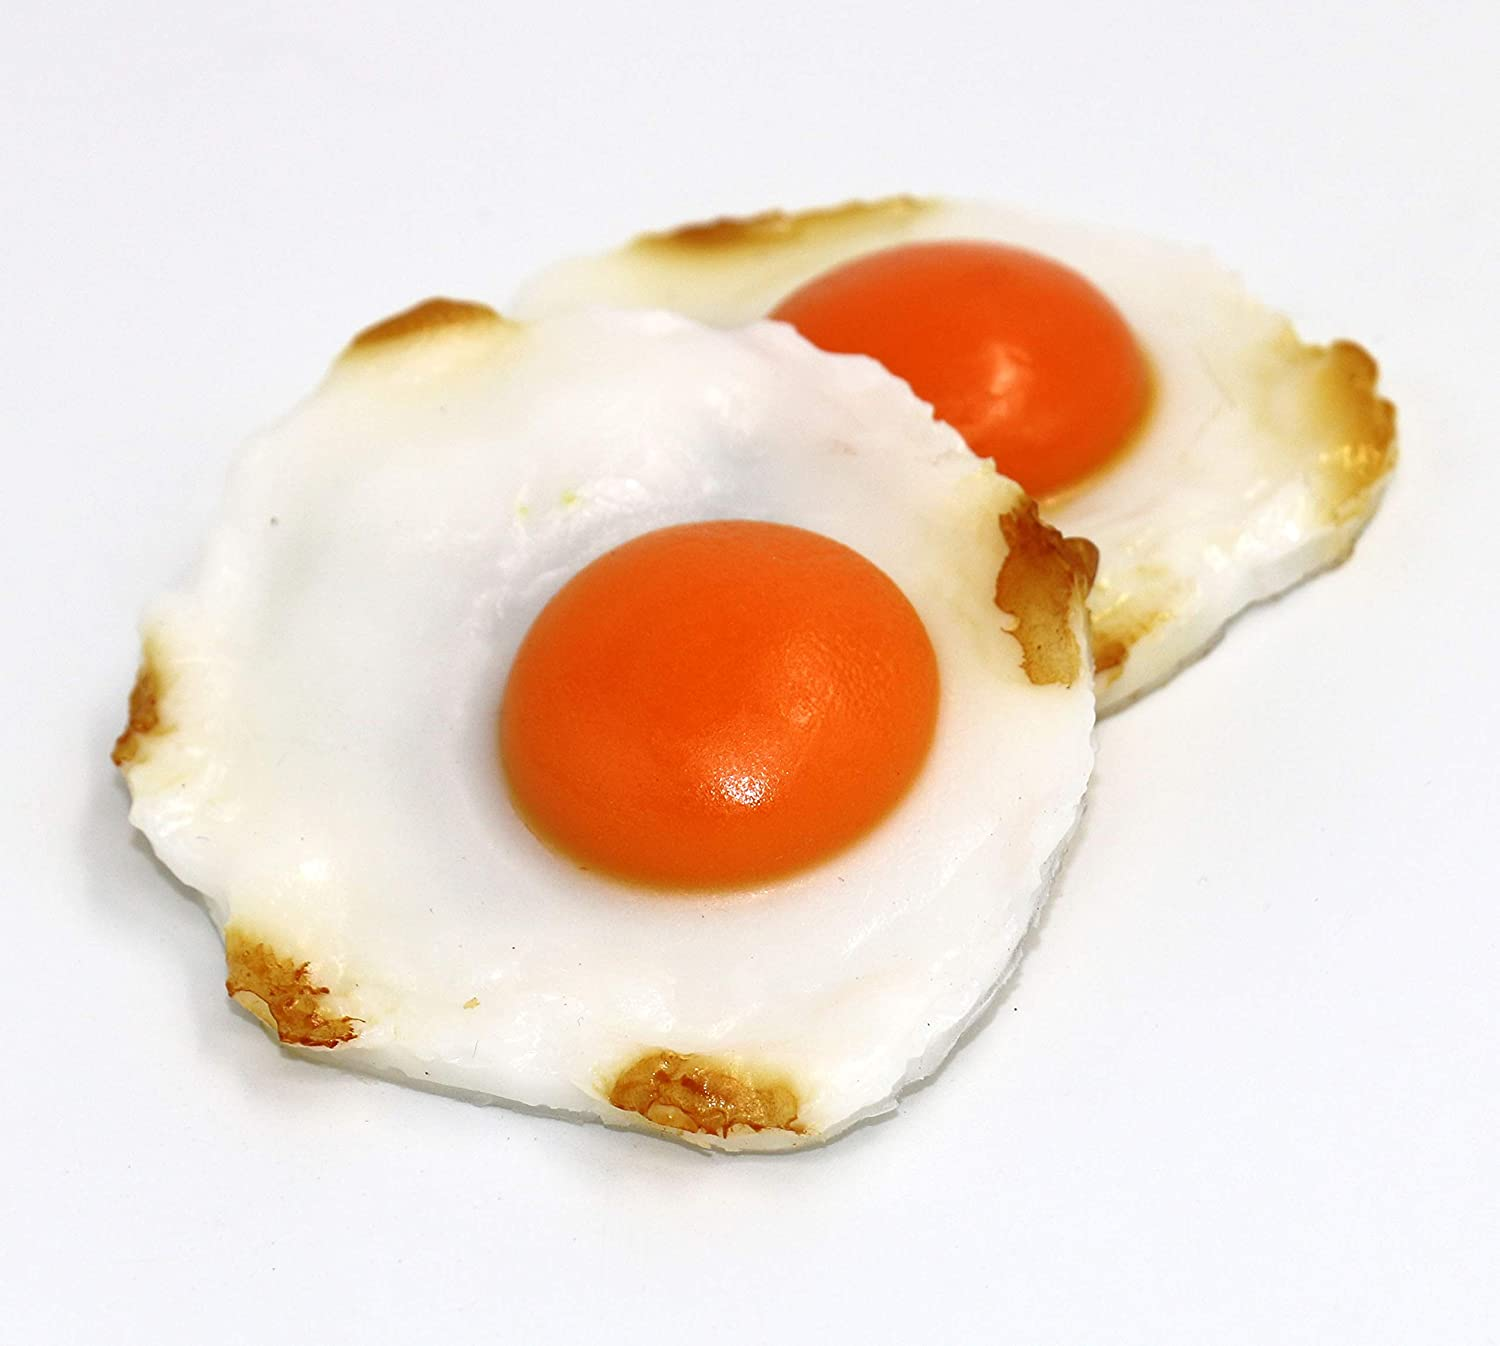 Nice purchase Artificial Fried Eggs Realistic Simulation Fake Food Lifelike Cooked Egg Model for Home Kitchen Party Display Decoration Props Prank